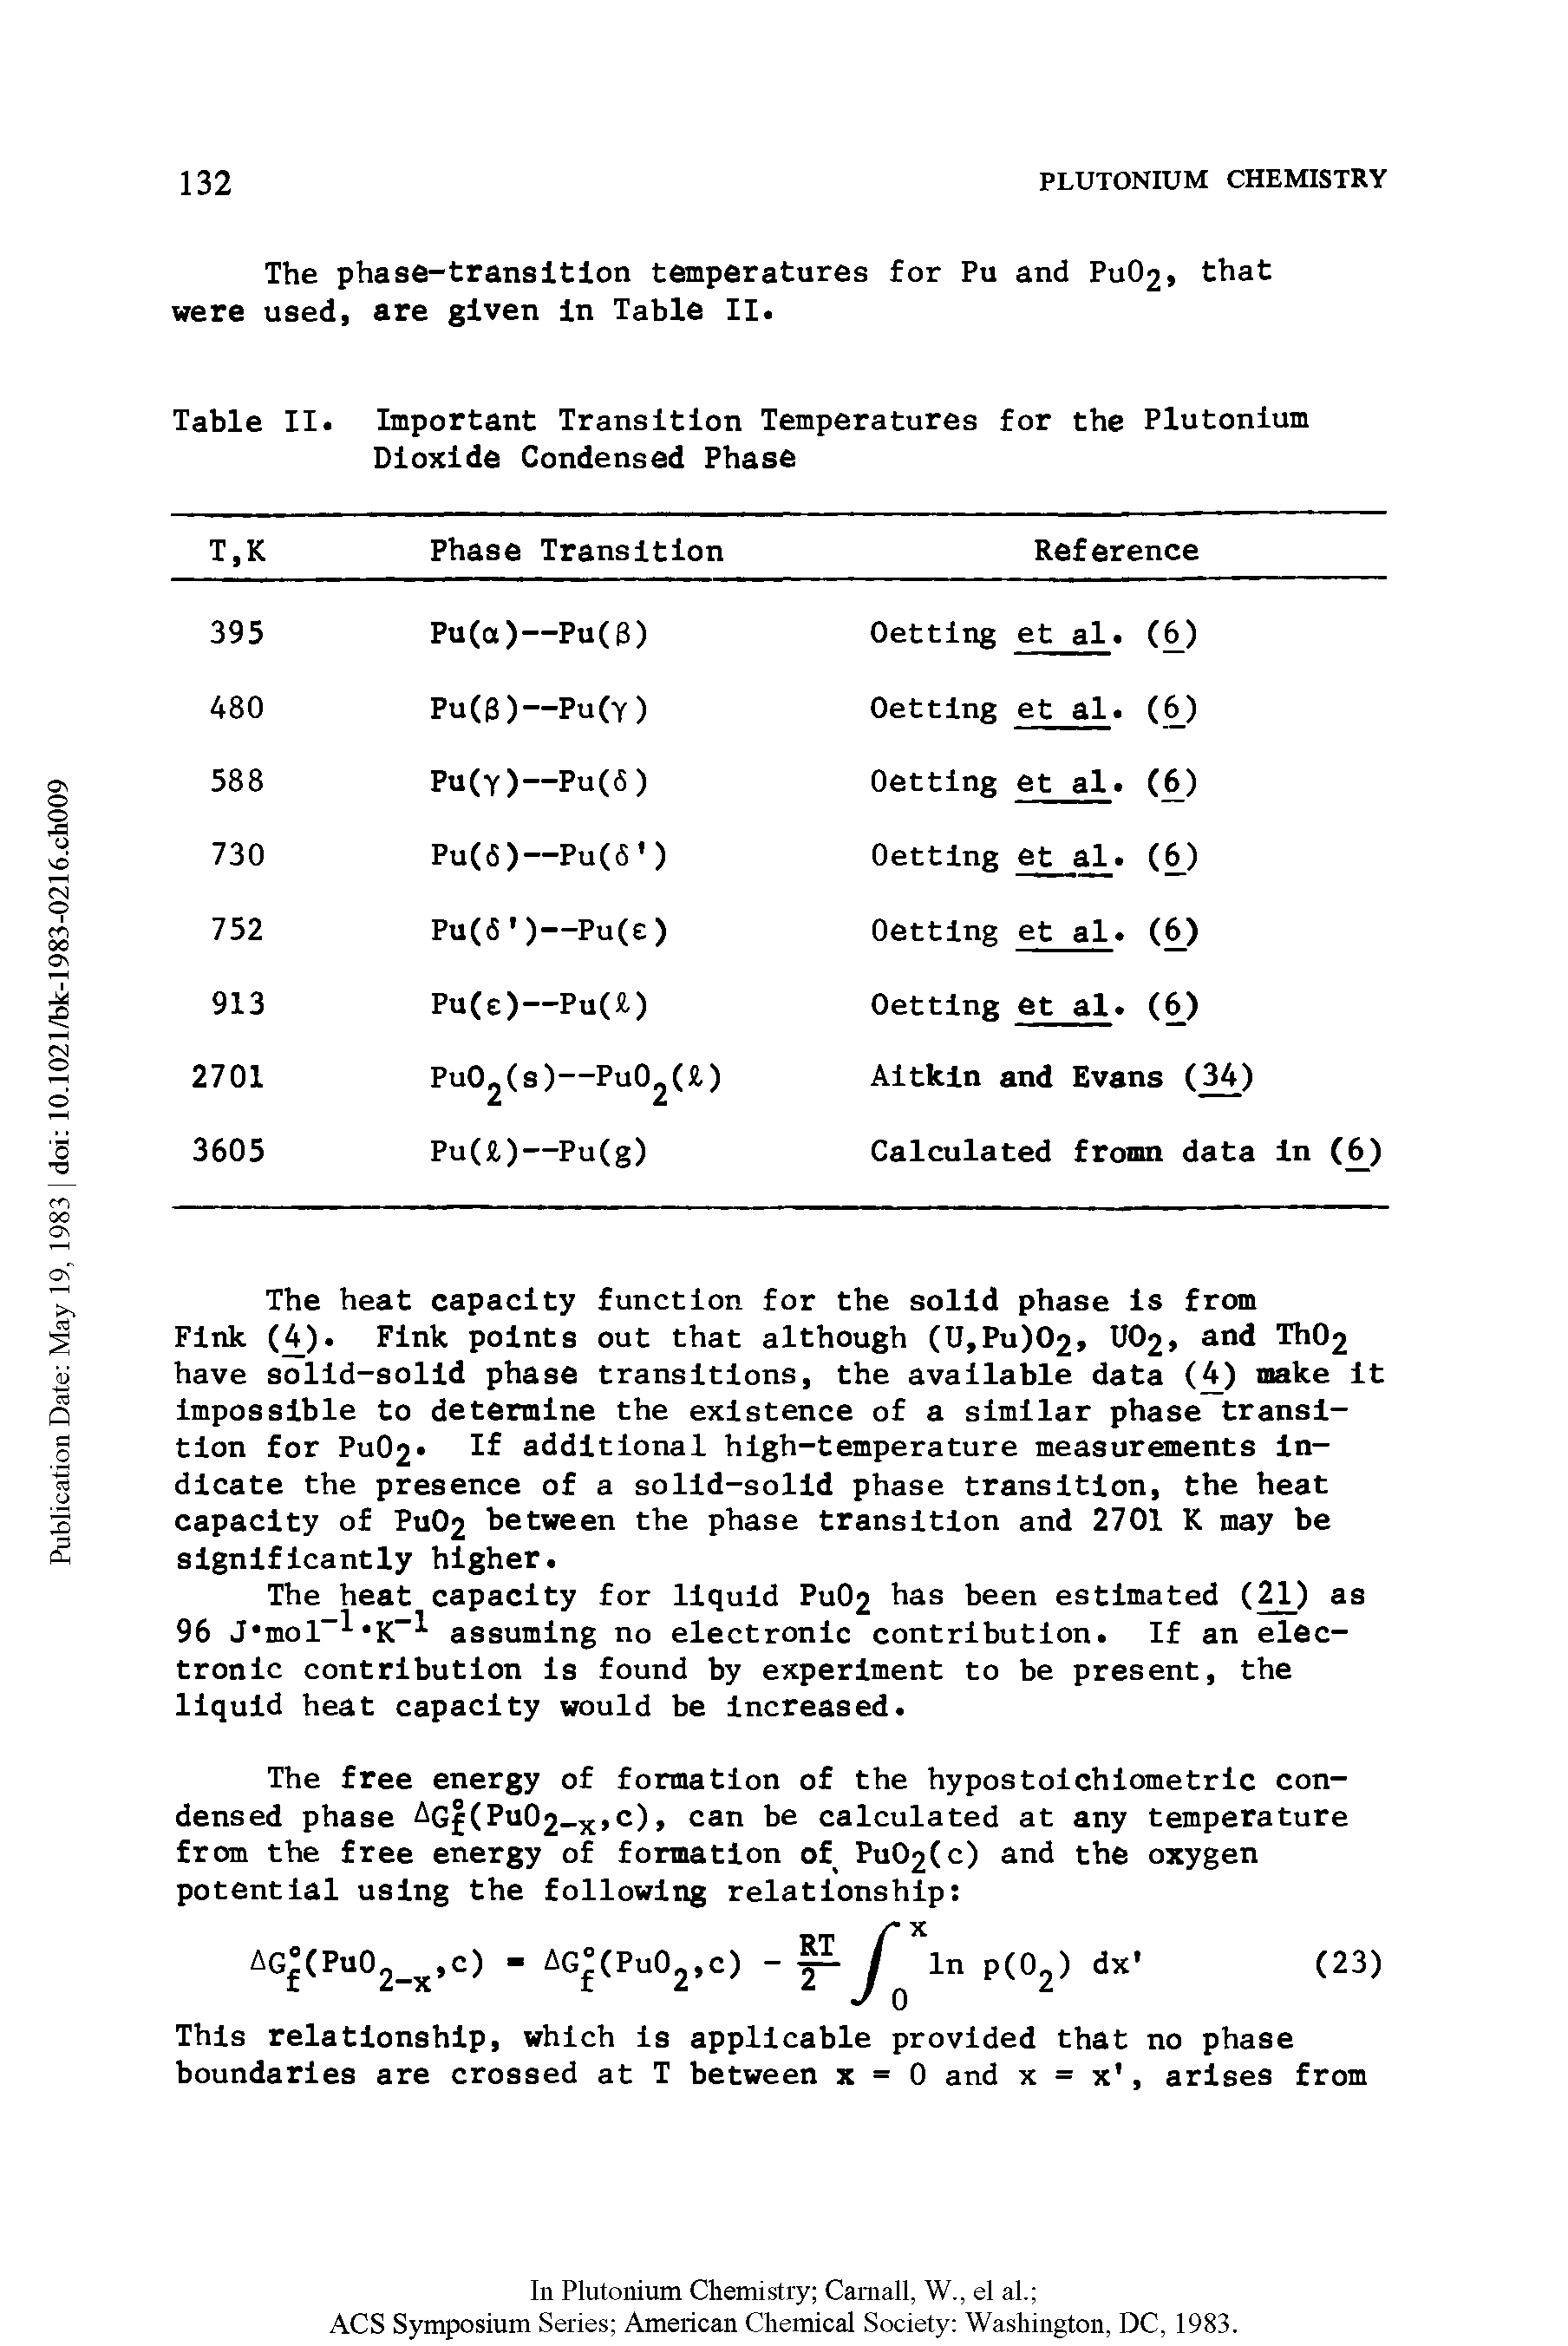 "Table II. <a href=""/info/transits_importance"">Important Transition</a> Temperatures for the Plutonium Dioxide Condensed Phase"